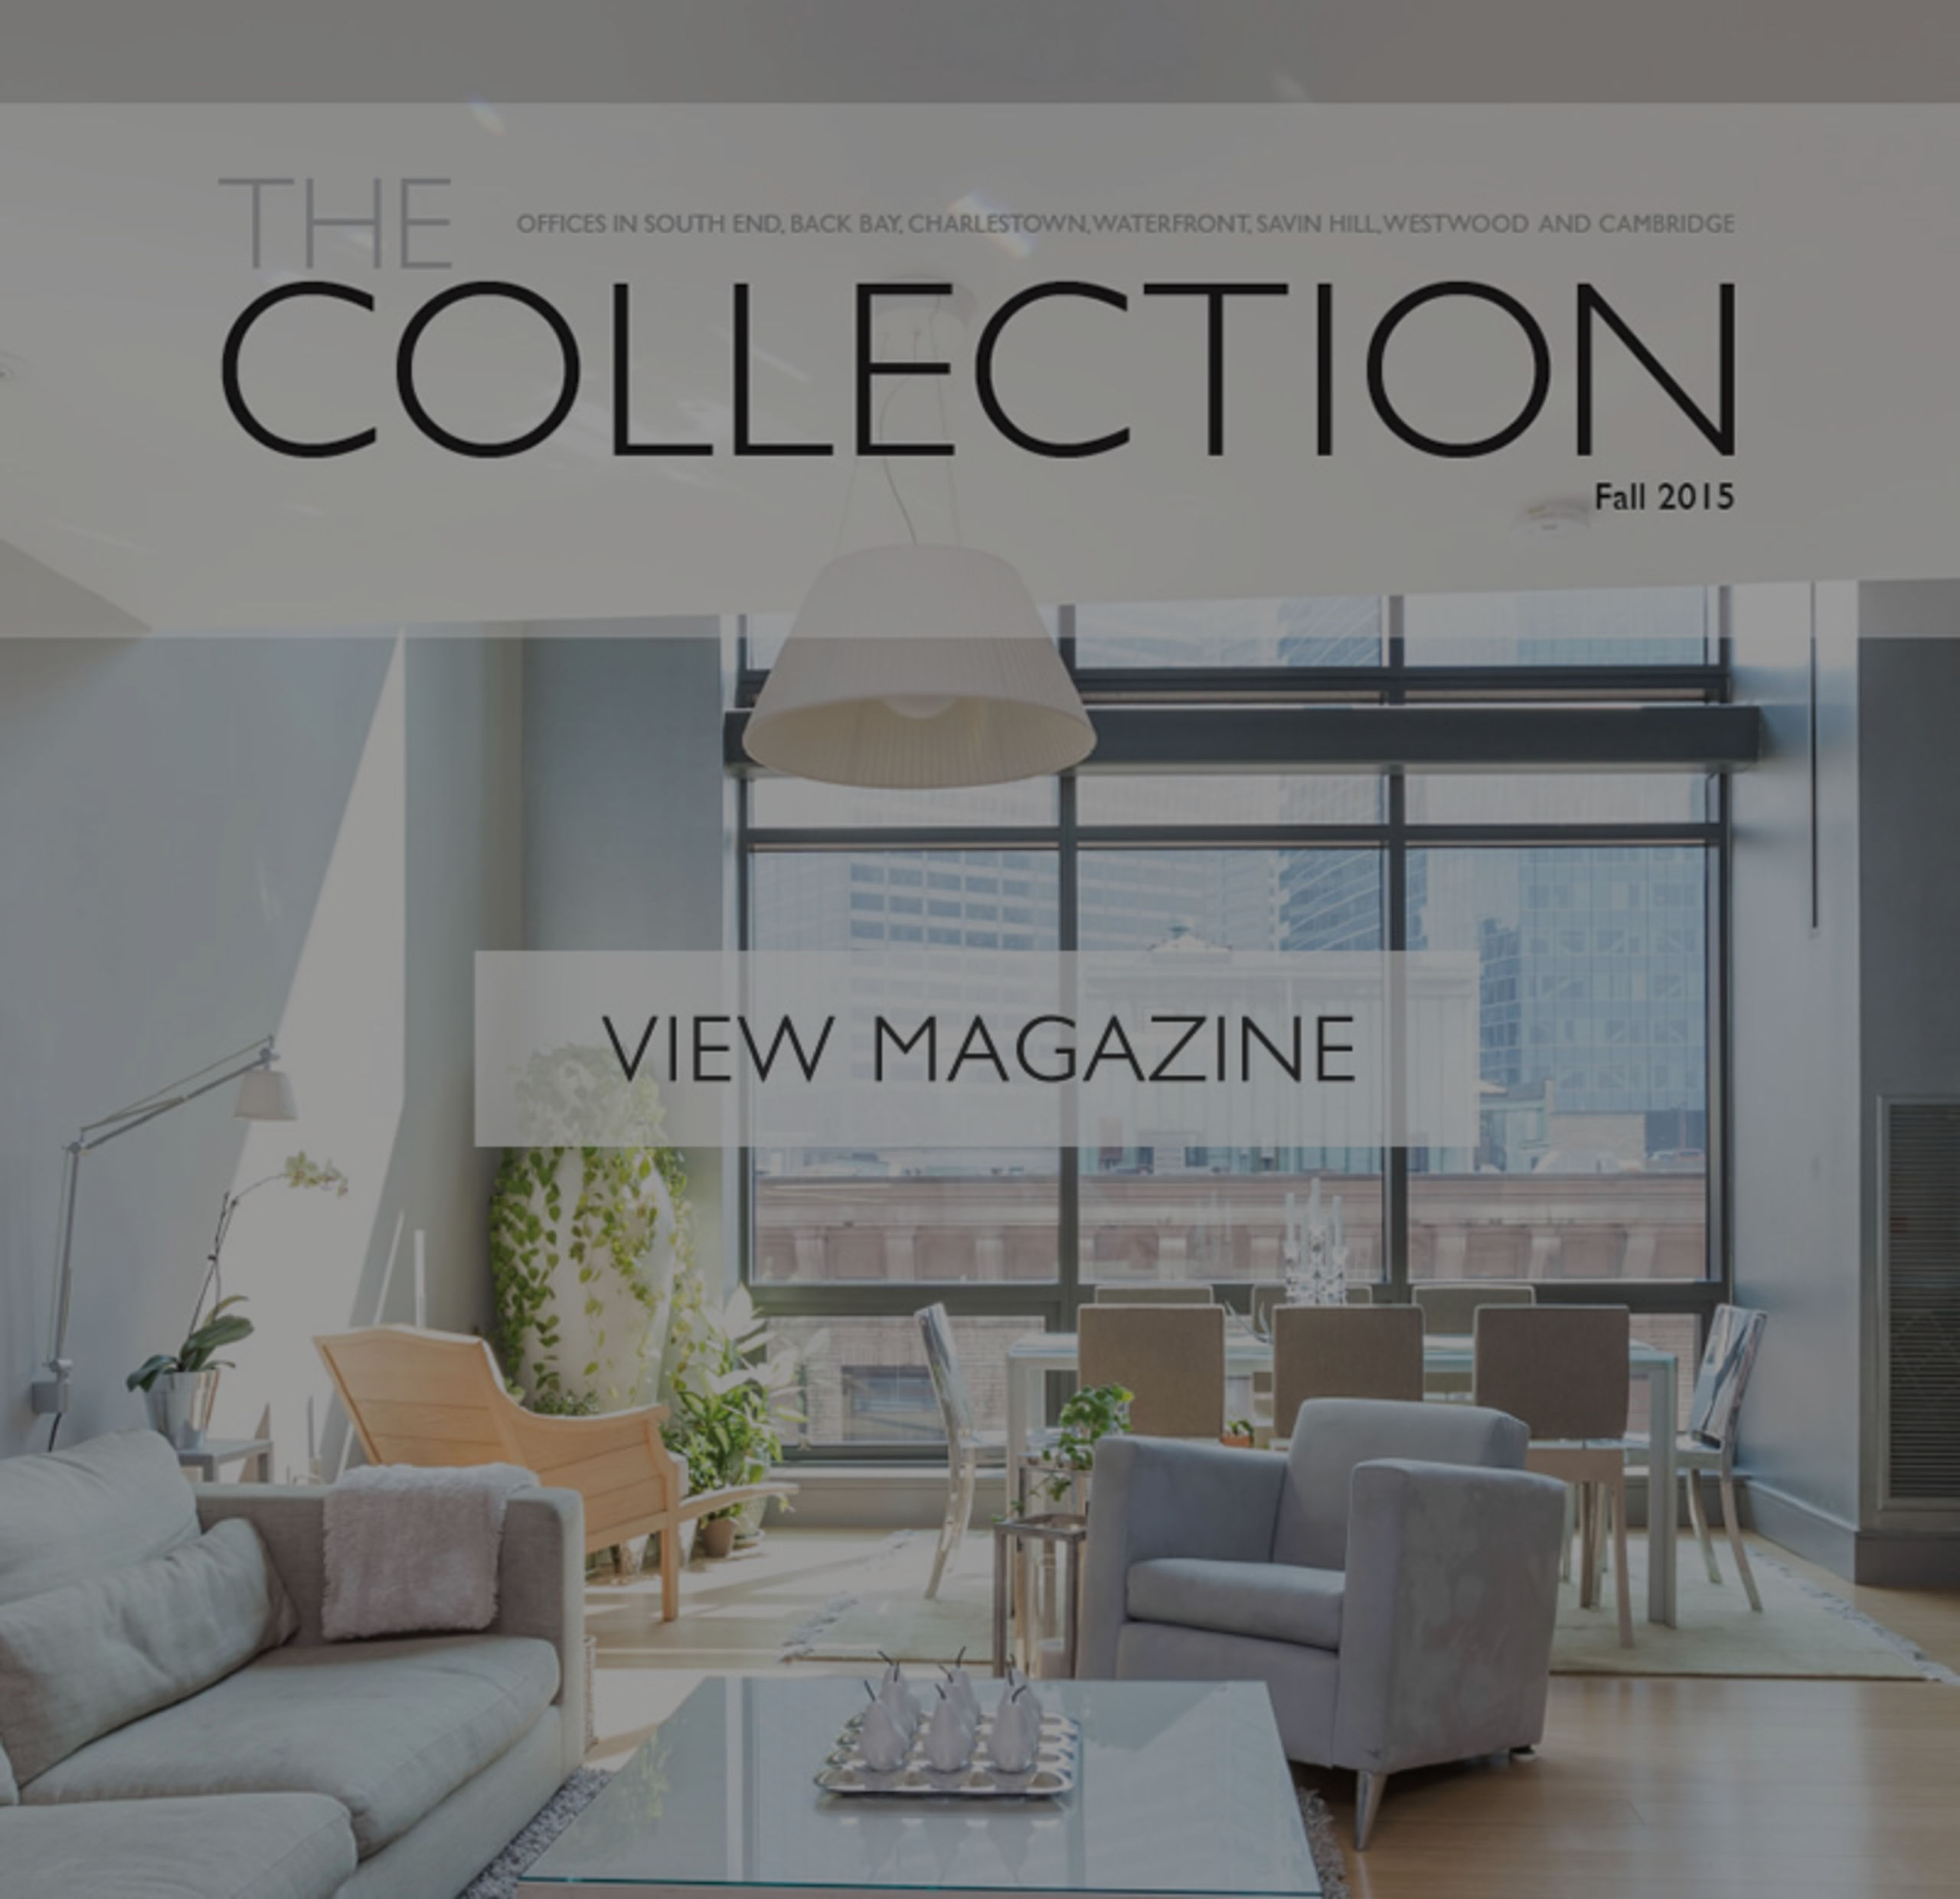 The Collection Magazine – Fall 2015